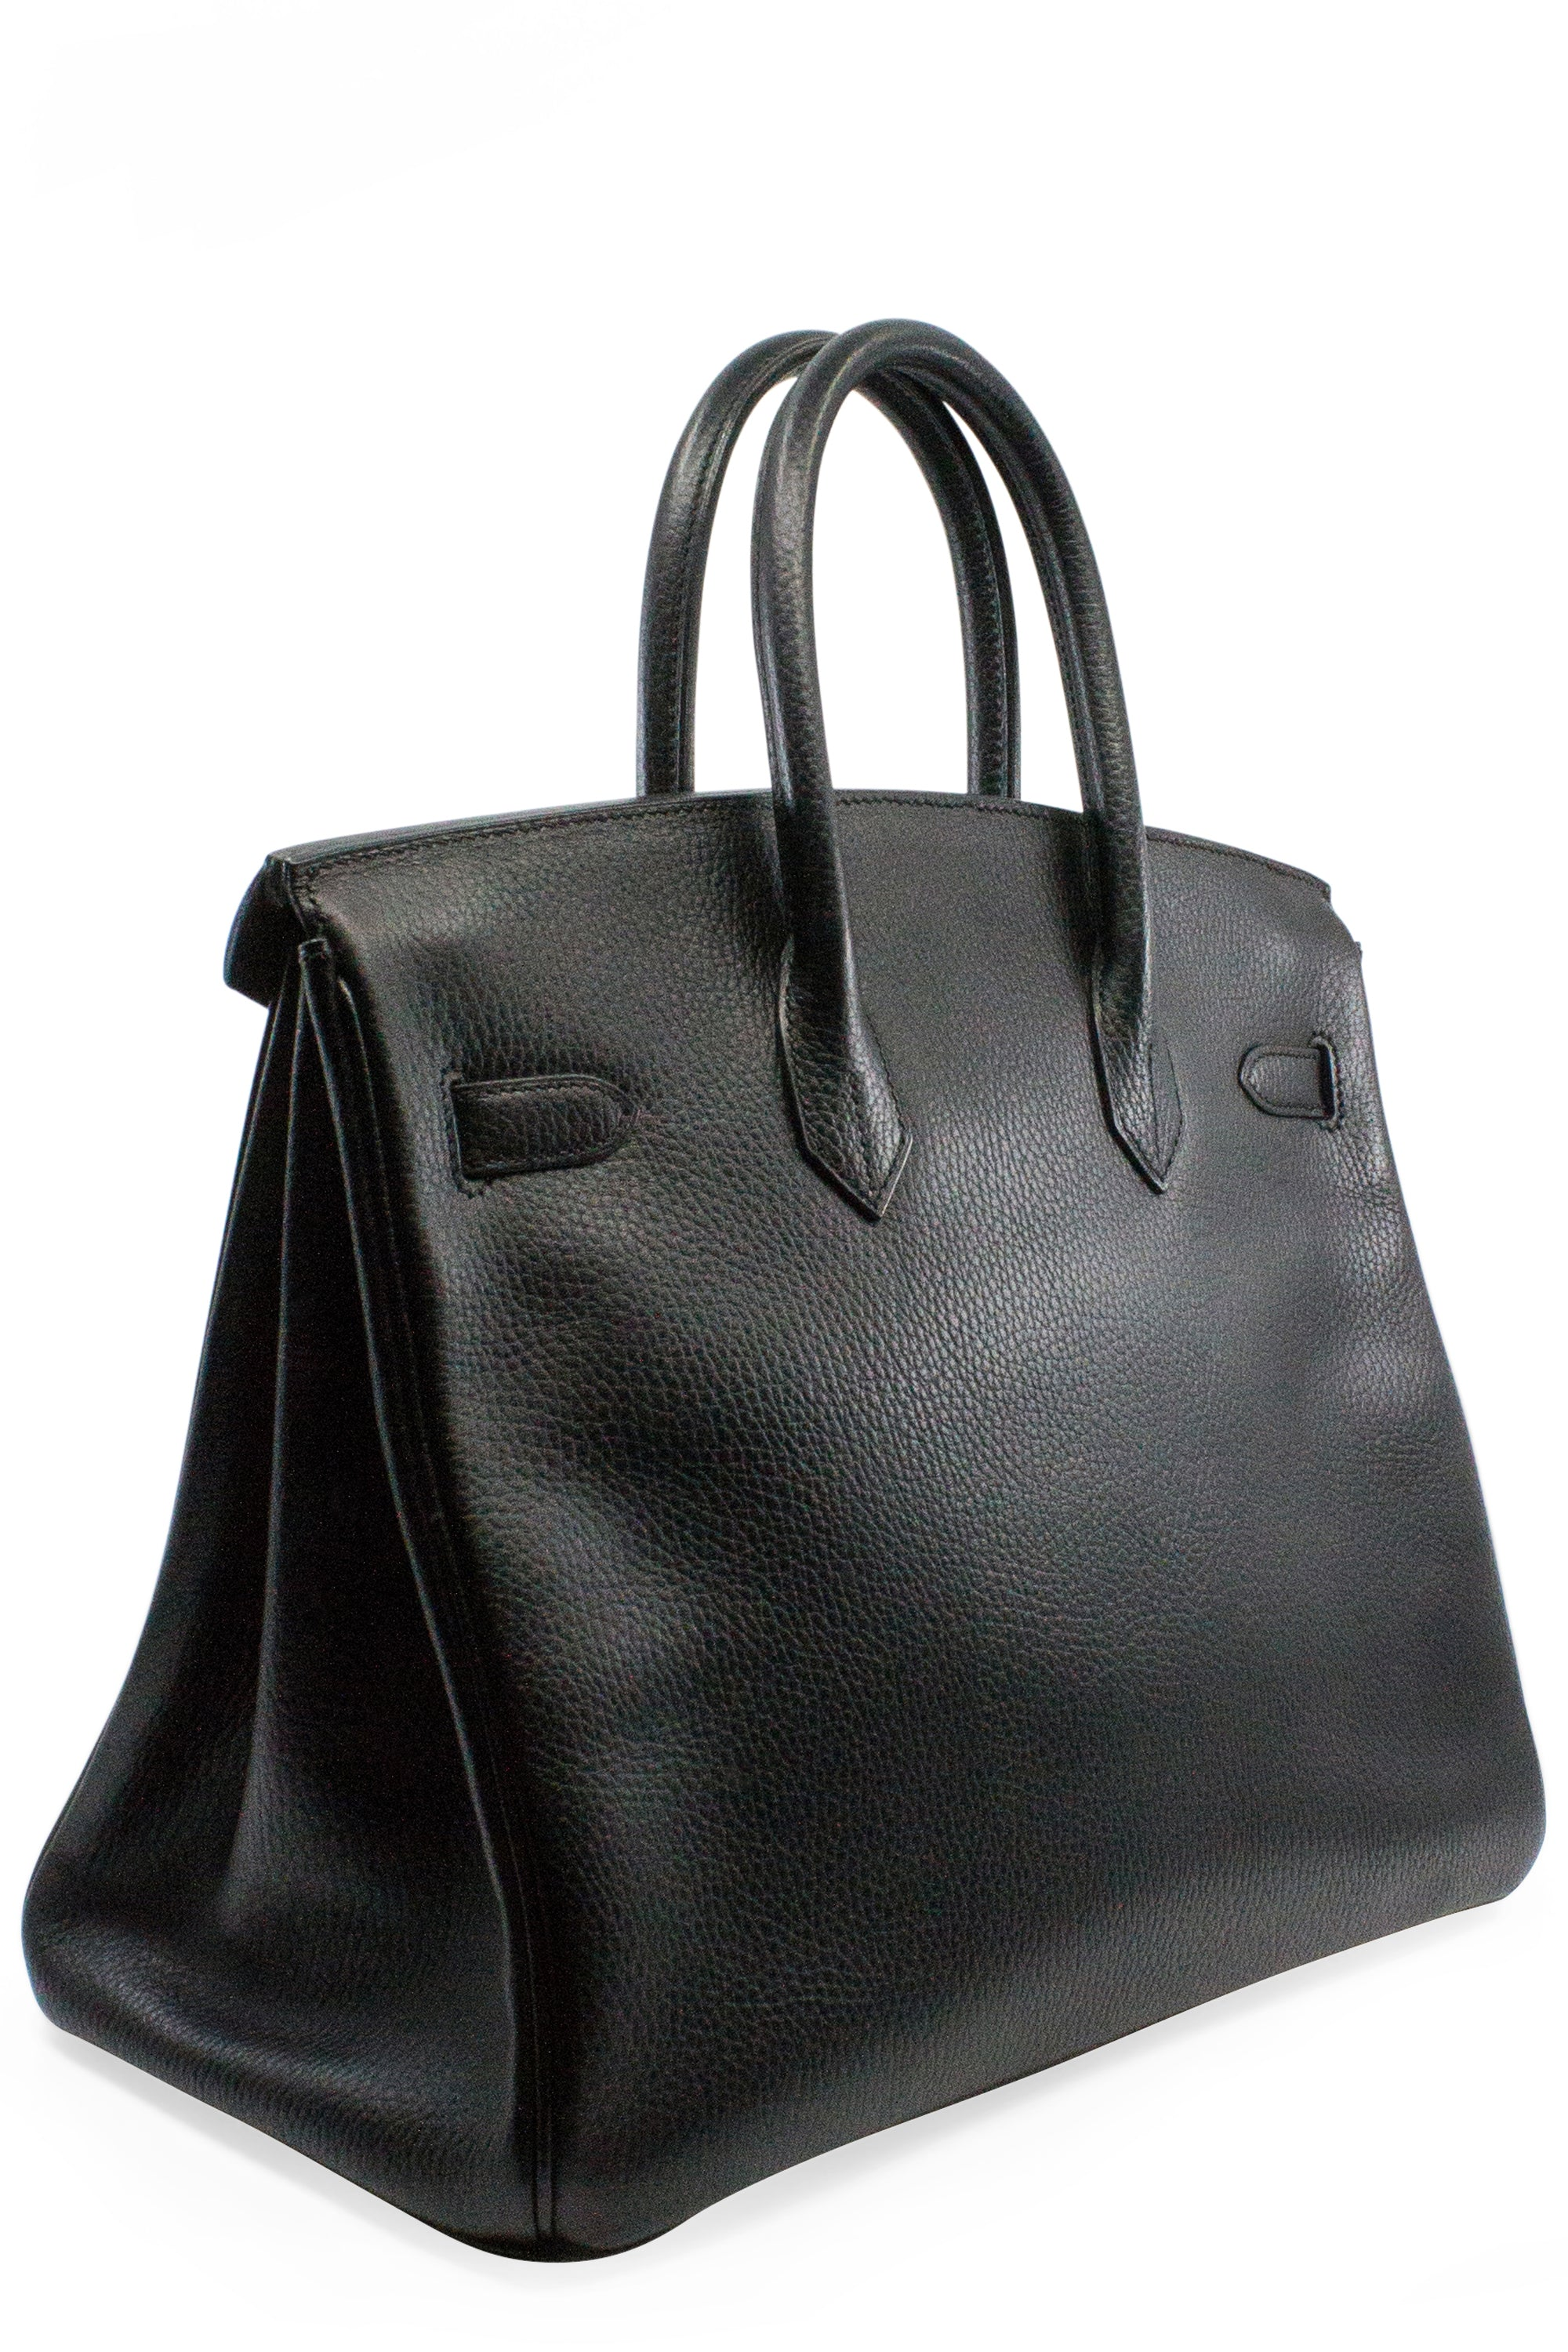 HERMÈS Black Birkin Bag 35